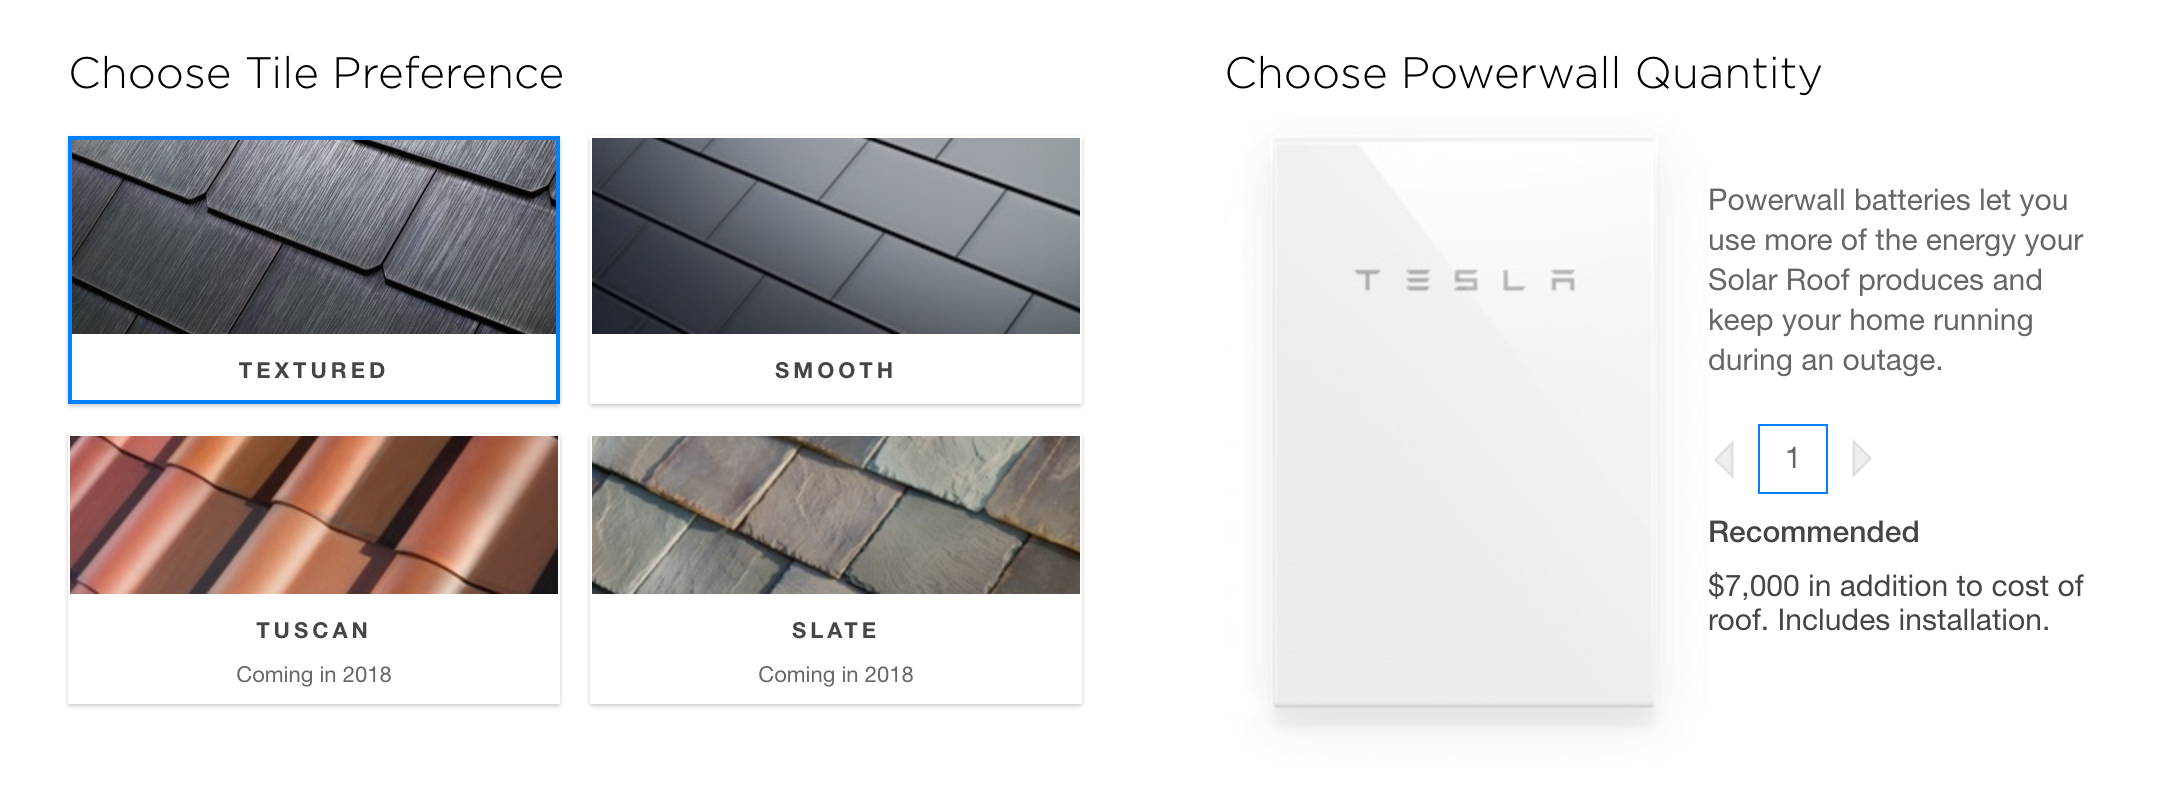 Solarcity Roof Tiles >> Here's How Much a Tesla Solar Roof Will Cost You (and How ...